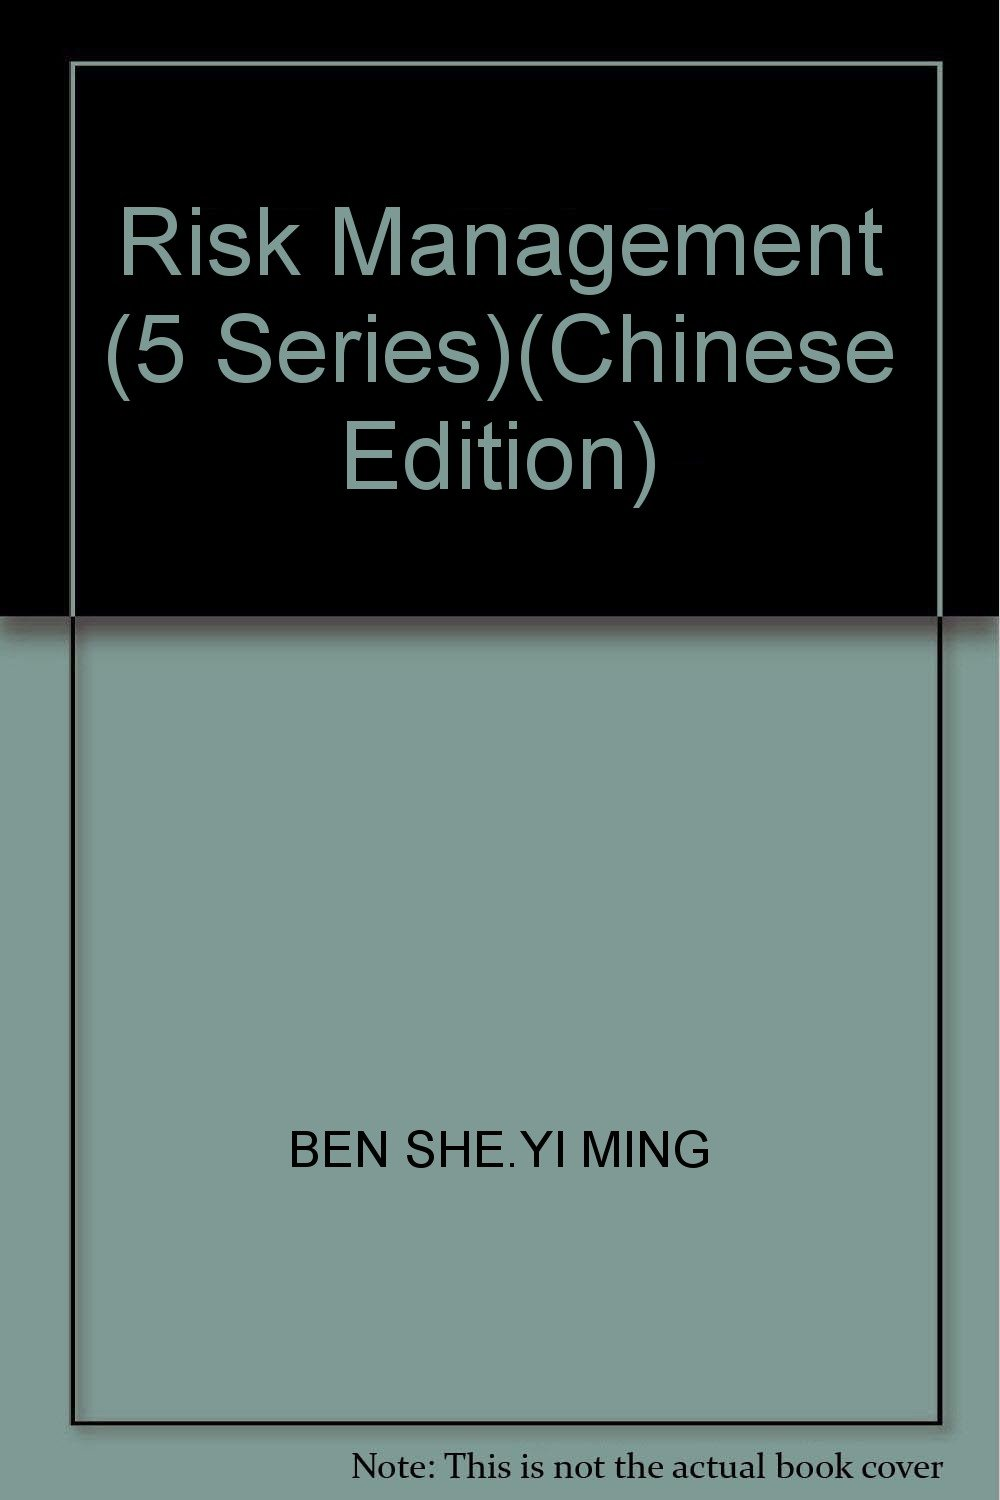 Risk Management (5 Series)(Chinese Edition) ebook